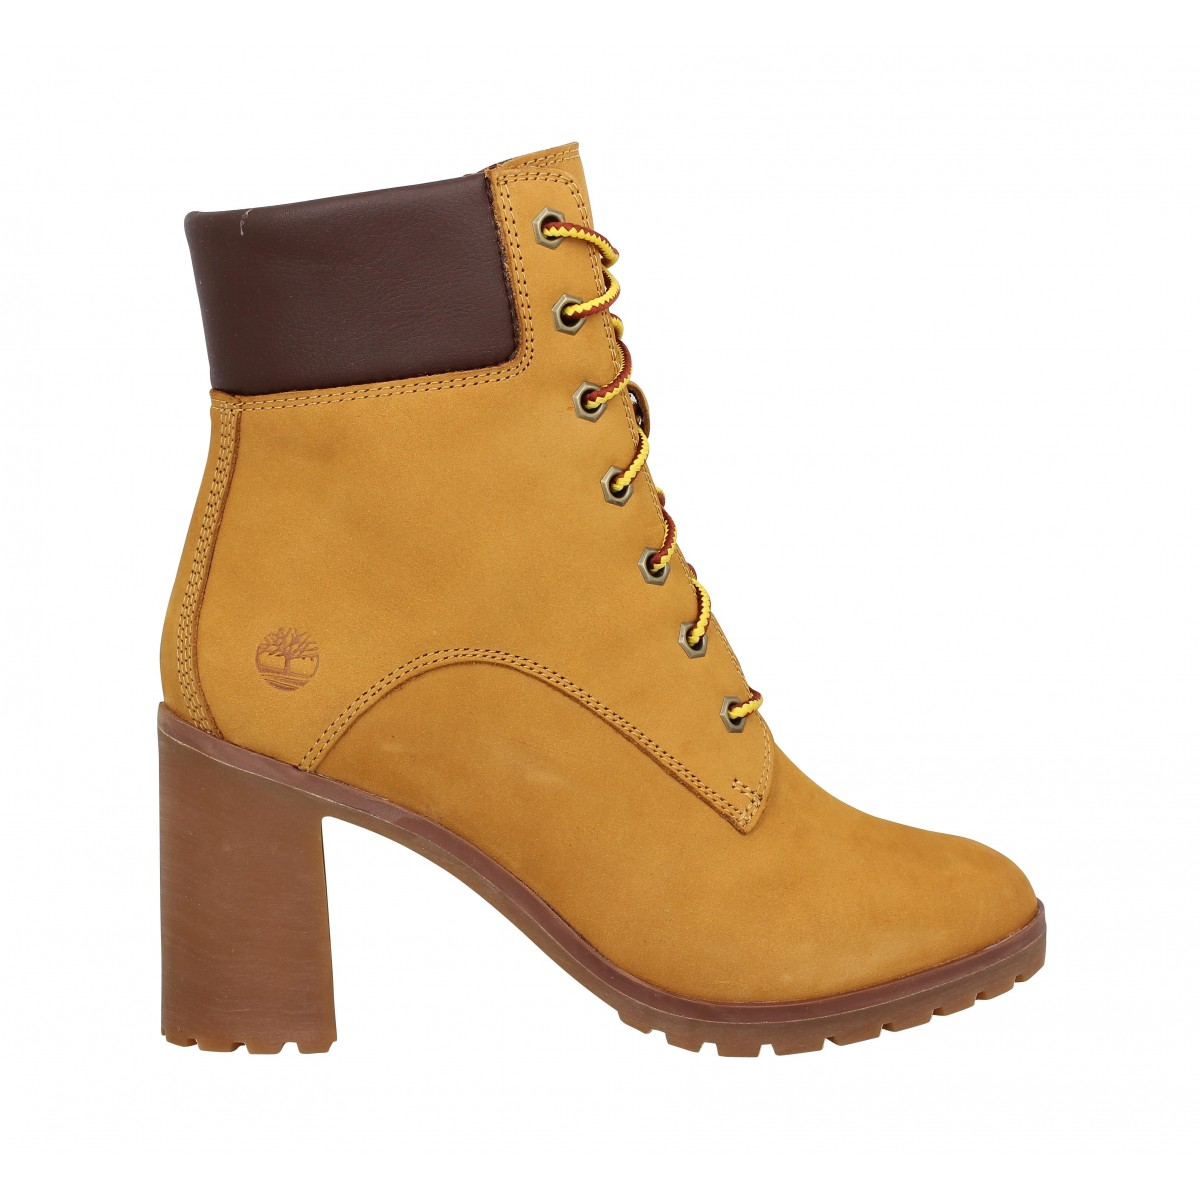 Timberland allington 6in lace up velours femme ocre femme   Fanny ... 75113b8cbb30